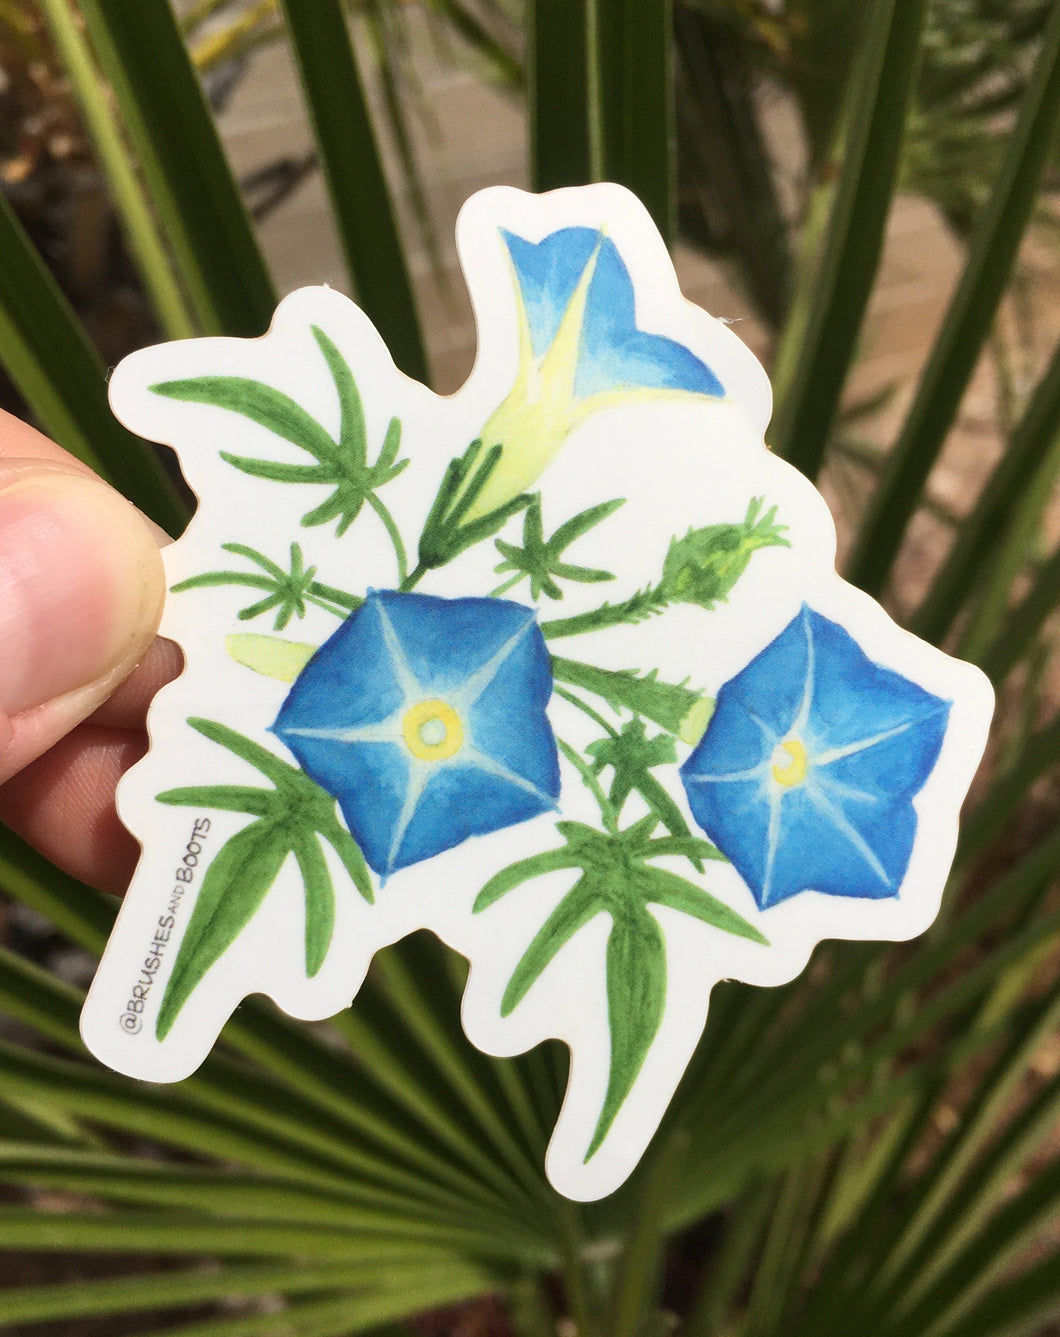 Vinyl sticker of Brushes and Boot's Canyon Morning Glory design - a blue flower found in canyons in the Sonoran Desert